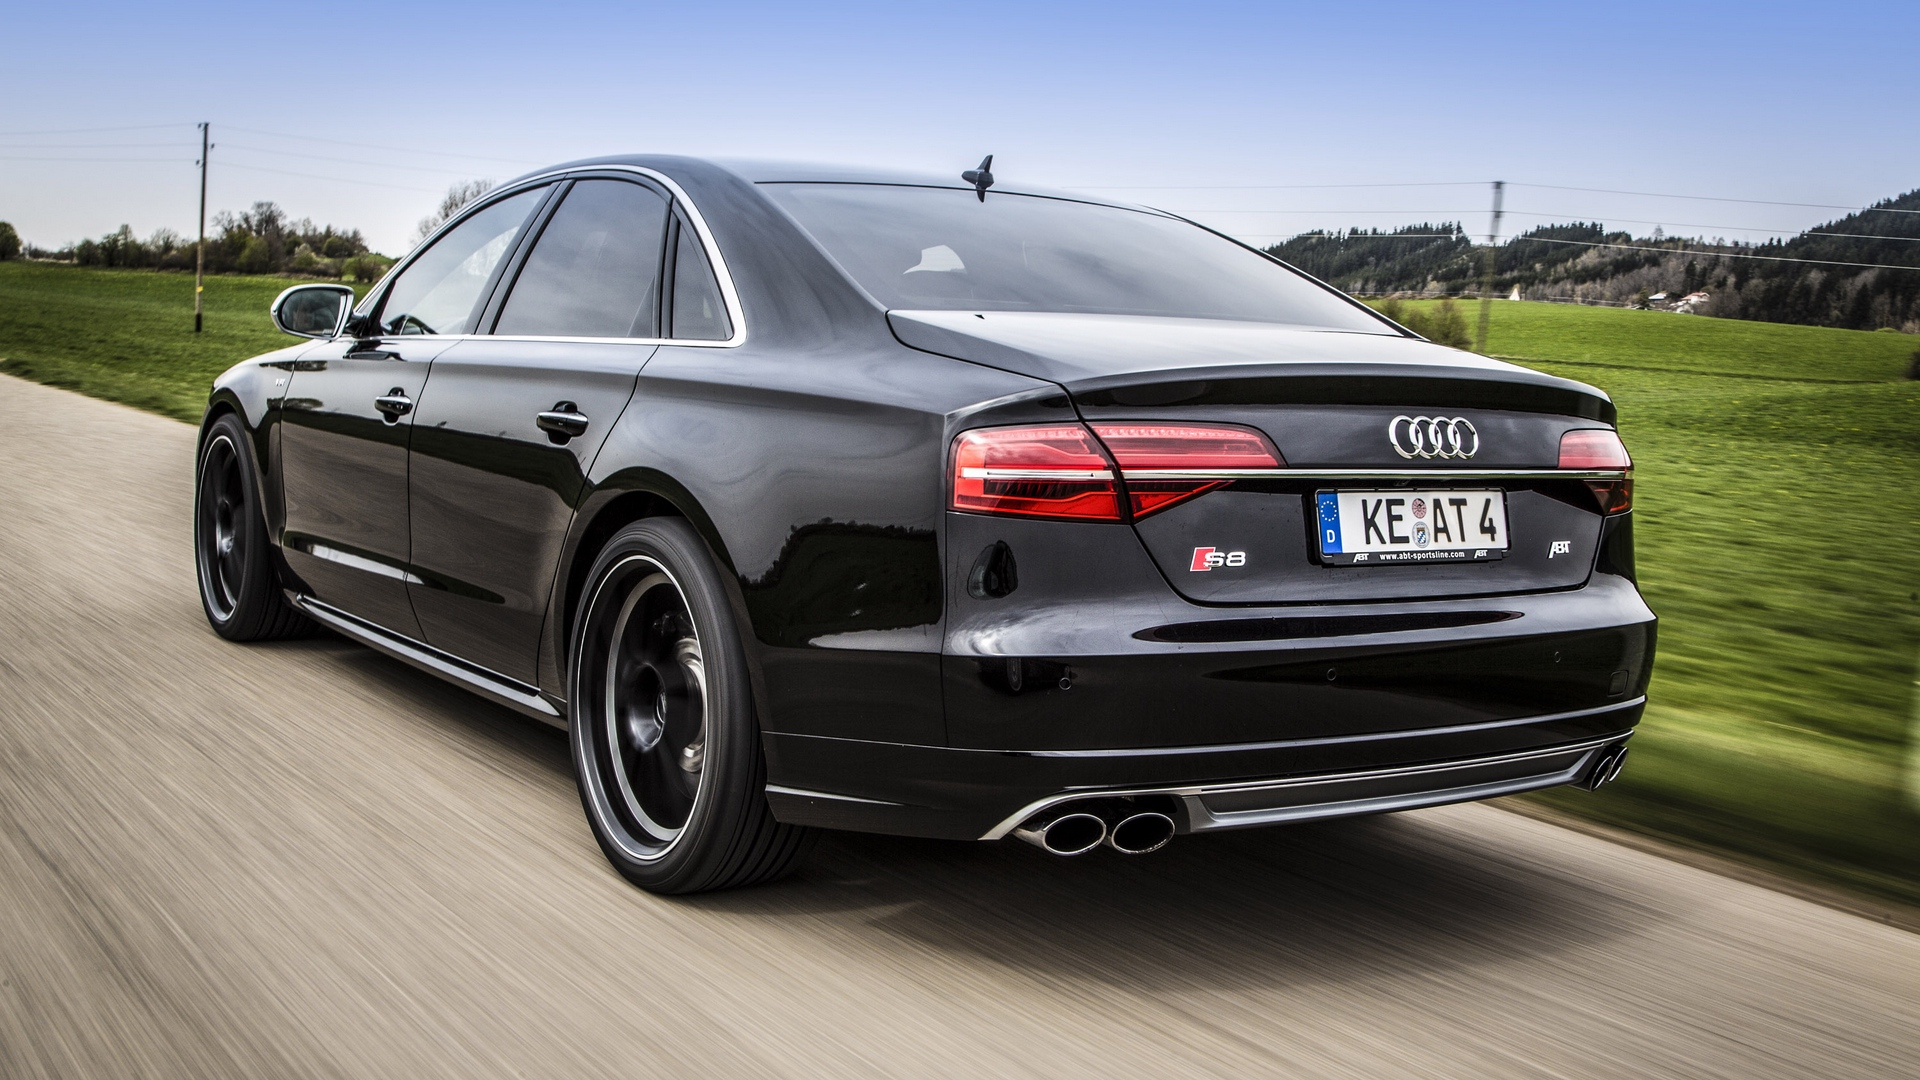 Download wallpaper 1920x1080 audi s8 abt sportsline abt tuning 1920x1080